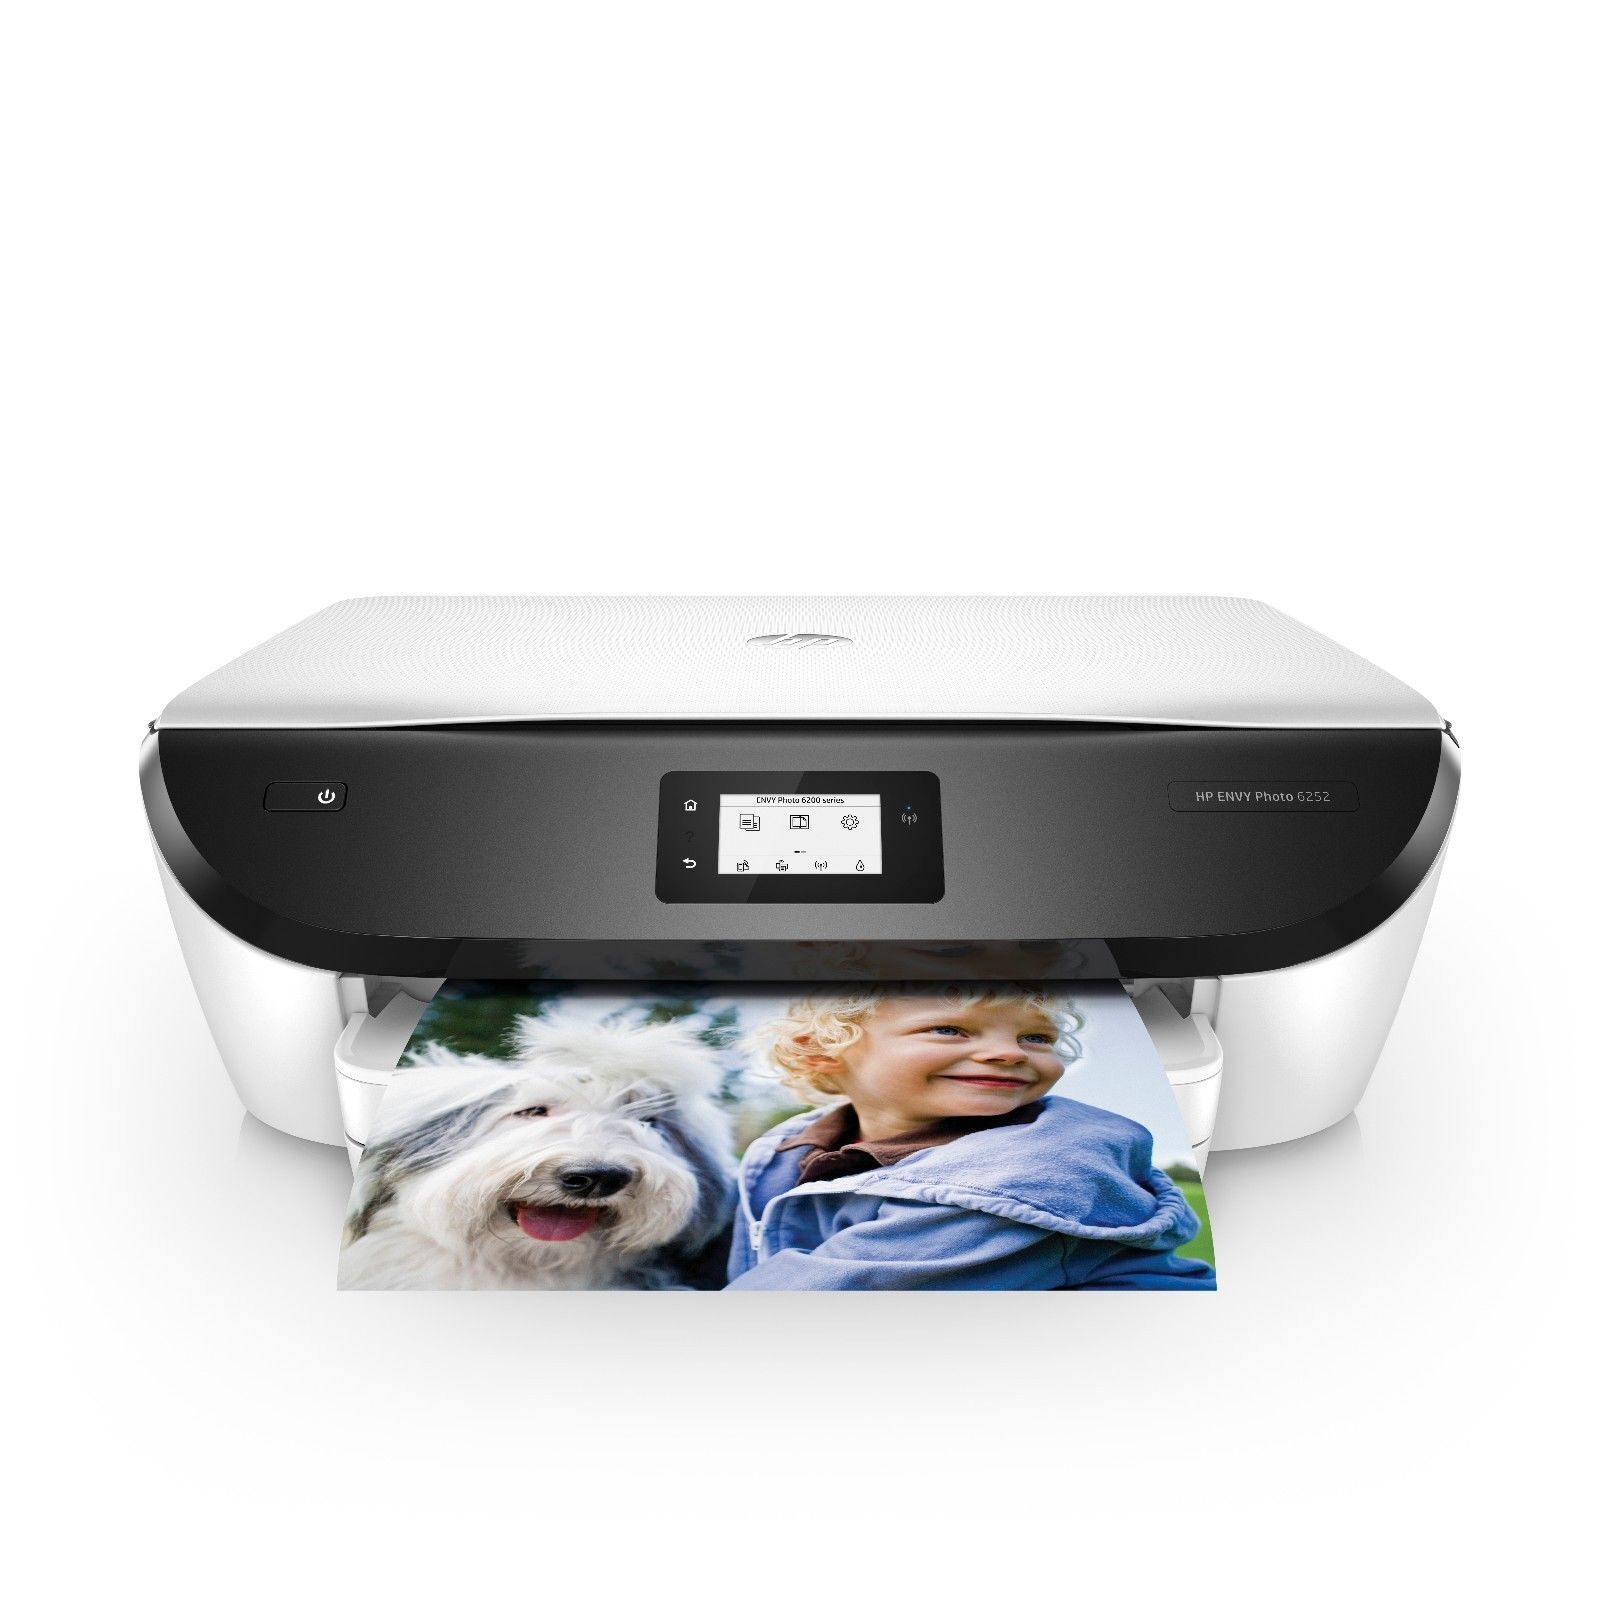 $99.97 - New~HP~ENVY~All-in-One~Photo~Printer~Print Wireless from your Smartphone~NIB